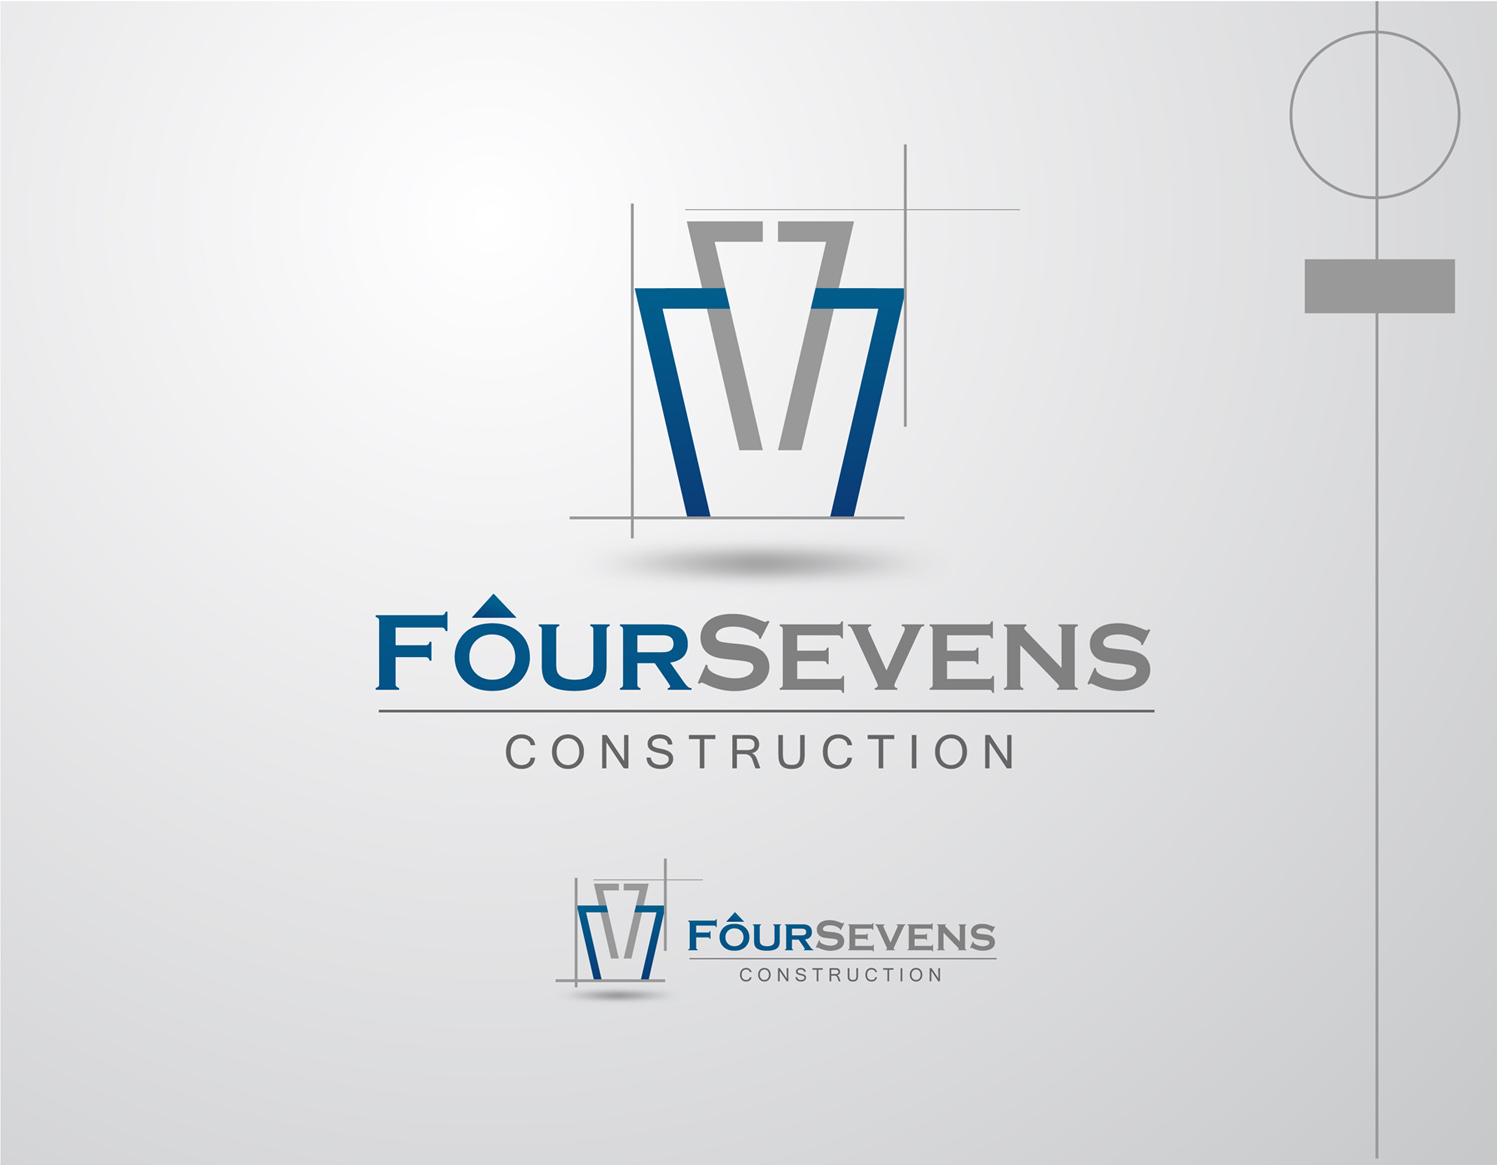 Logo Design by Mark Anthony Moreto Jordan - Entry No. 41 in the Logo Design Contest New Logo Design for foursevens.